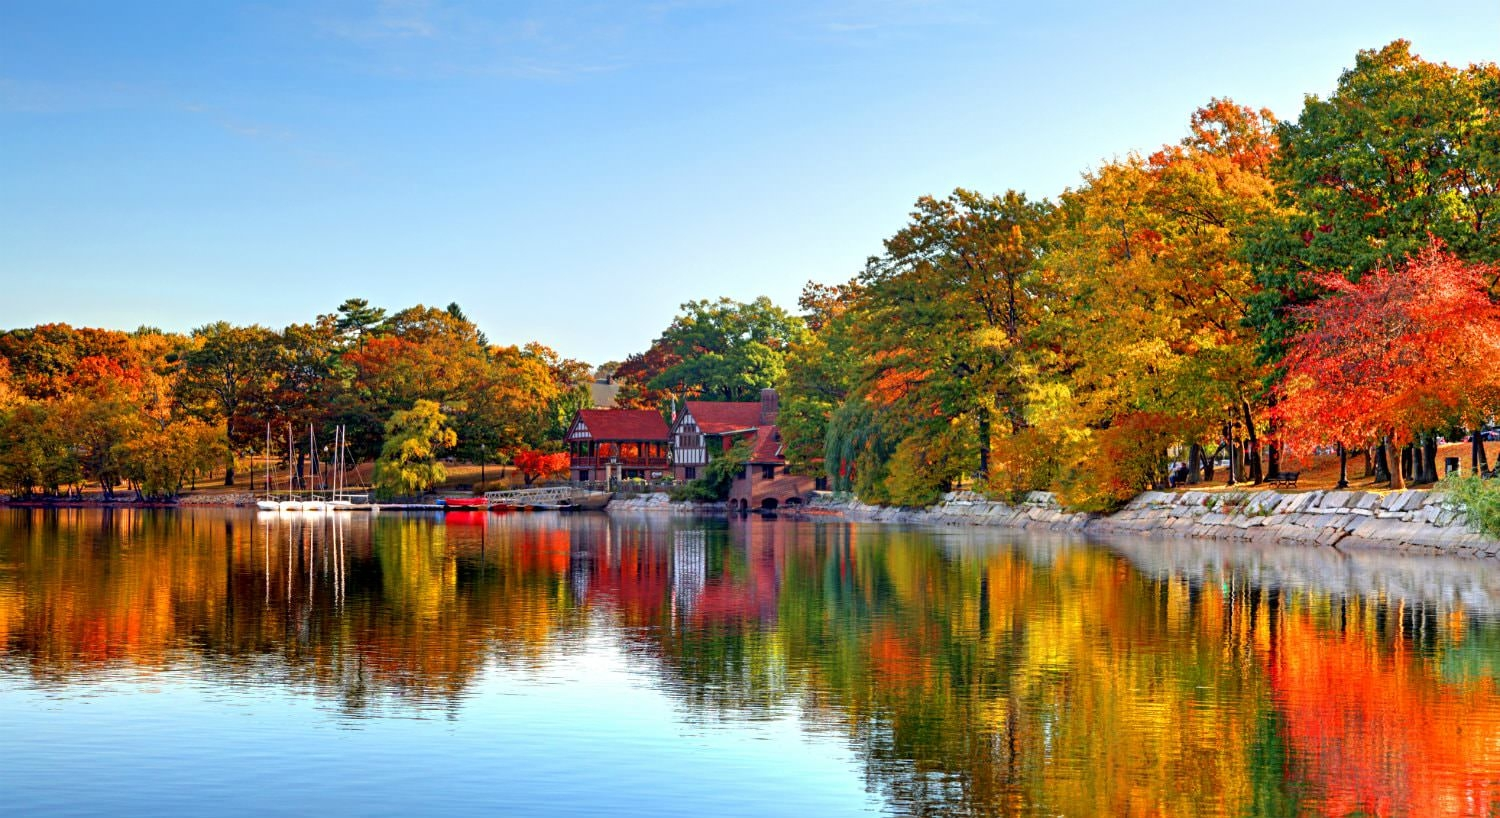 Vibrant trees with green, yelow, orange and red leaves reflected in a body of water against blue skies